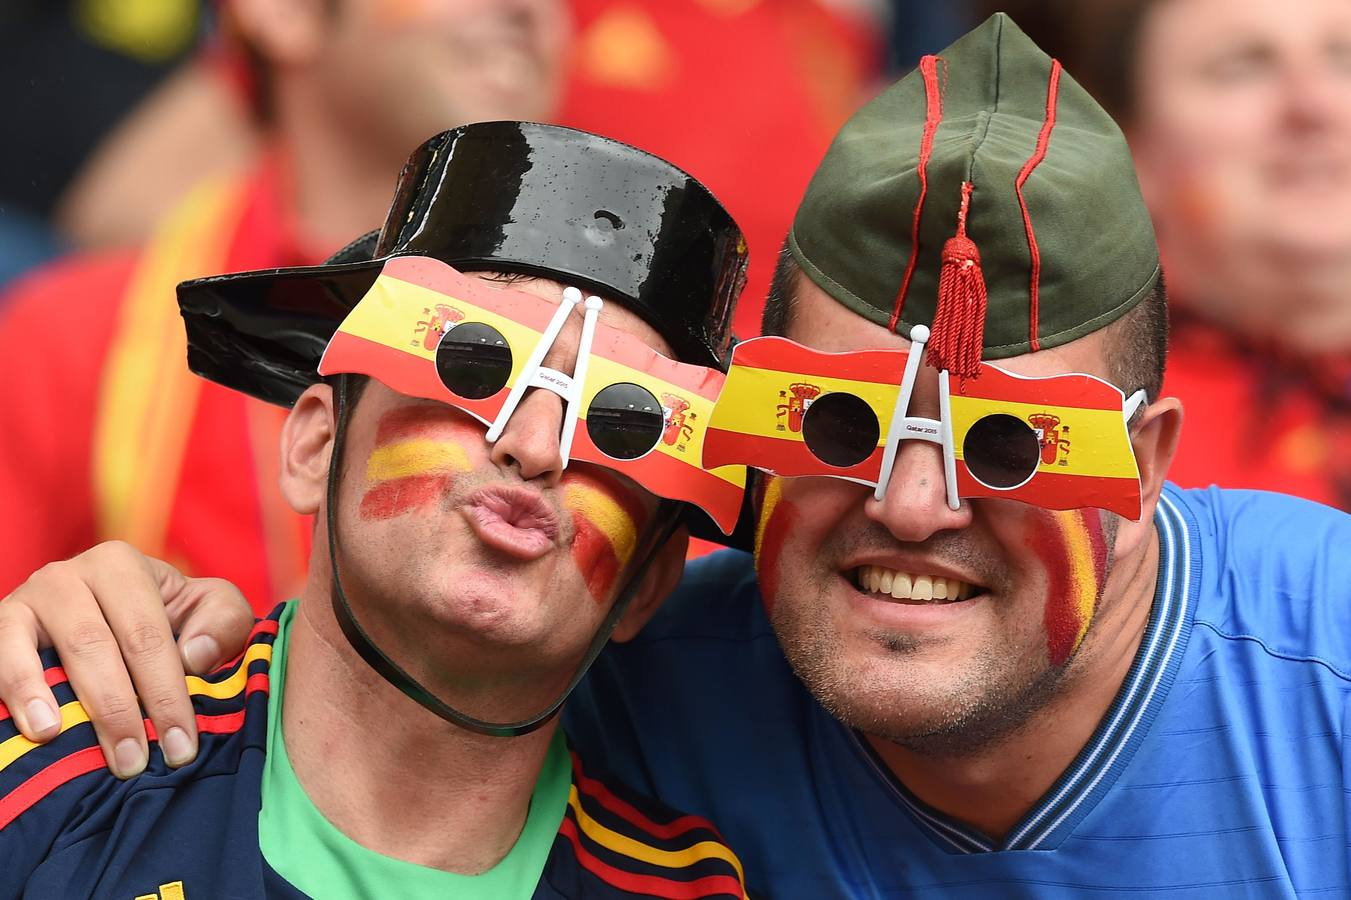 Spain supporters attend the Euro 2016 group D football match between Spain and Czech Republic at the Stadium Municipal in Toulouse on June 13, 2016. / AFP PHOTO / NICOLAS TUCAT